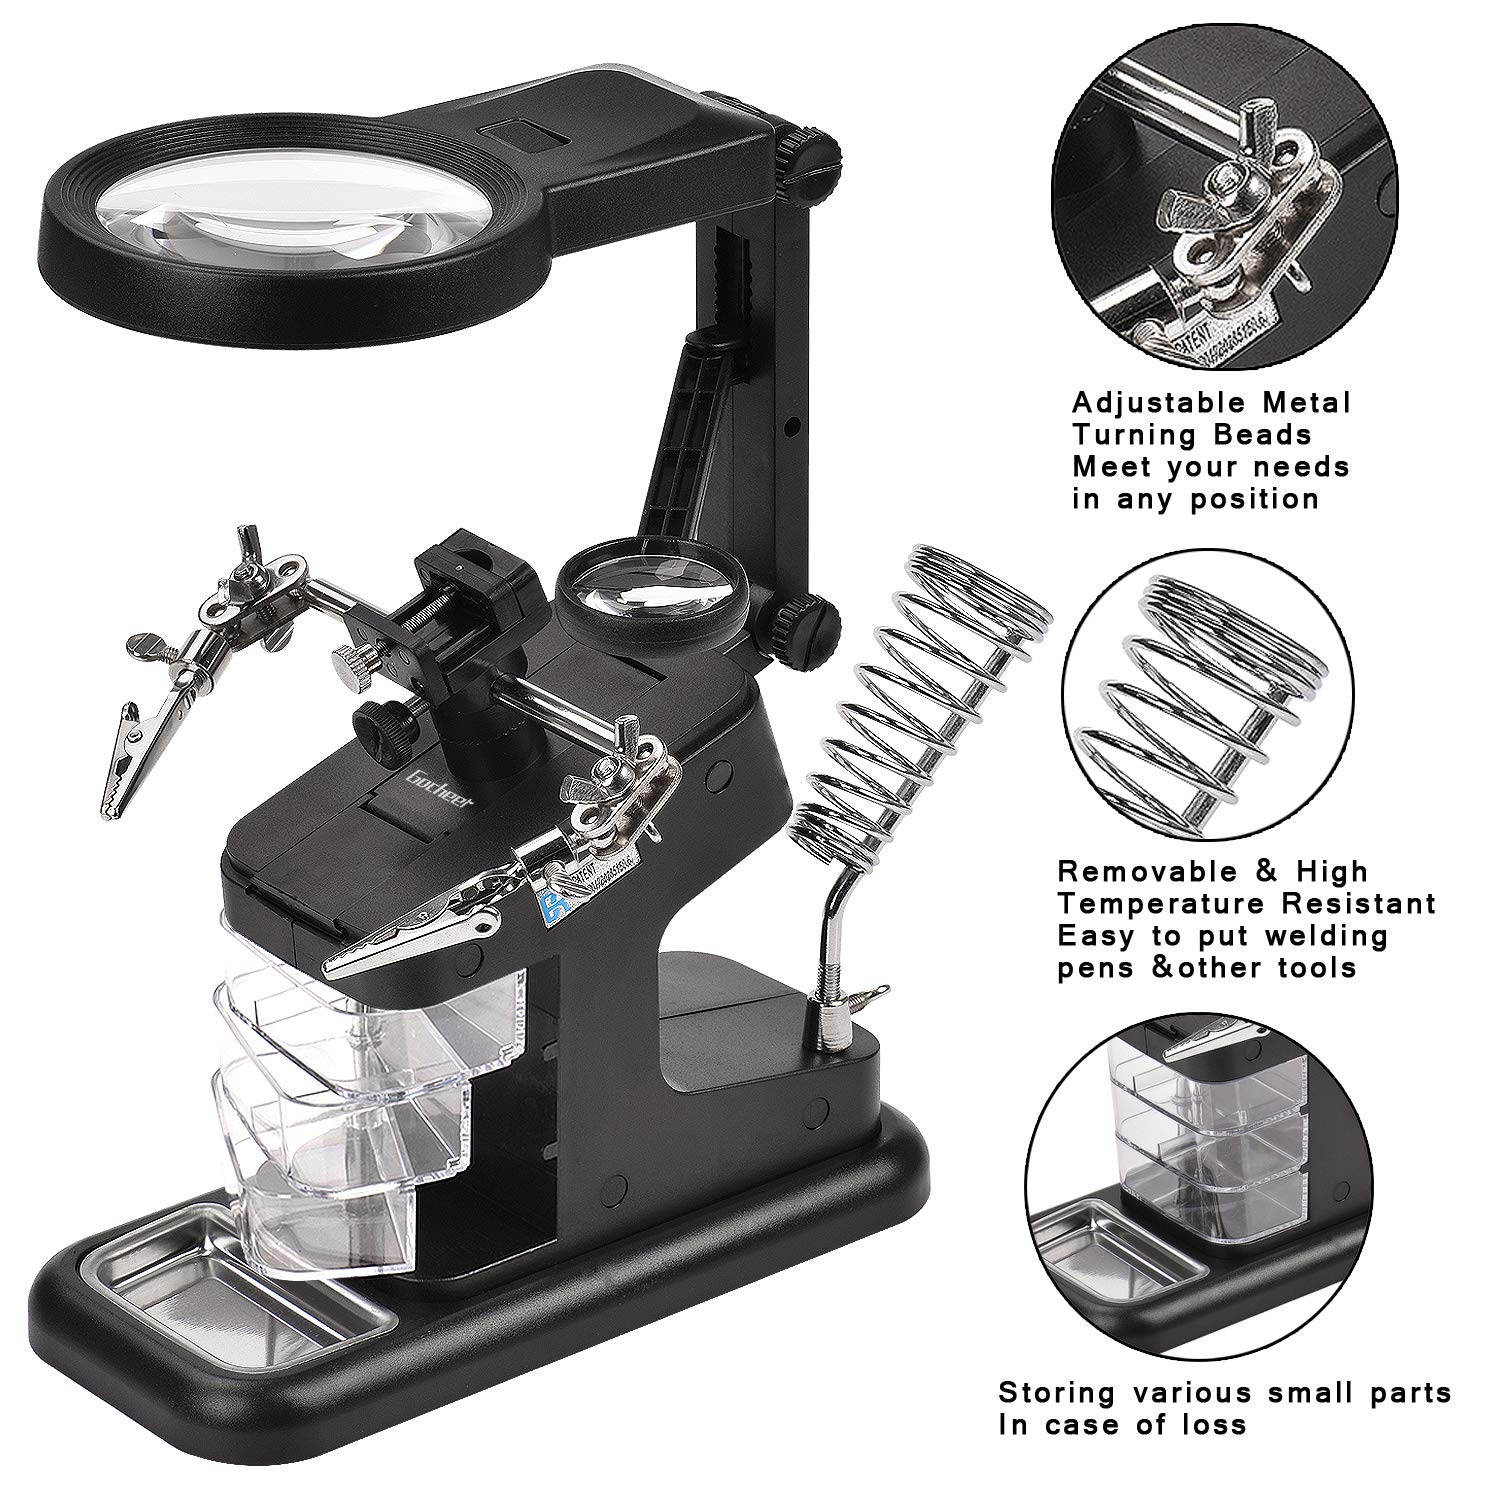 Gocheer Multi-functional Welding Magnifier 3X/4.5X/25X LED Light Helping Hands Magnifier Station with Clamp and Alligator Clips-Hobby Magnifier for Soldering, Assembly, Repair and Modeling